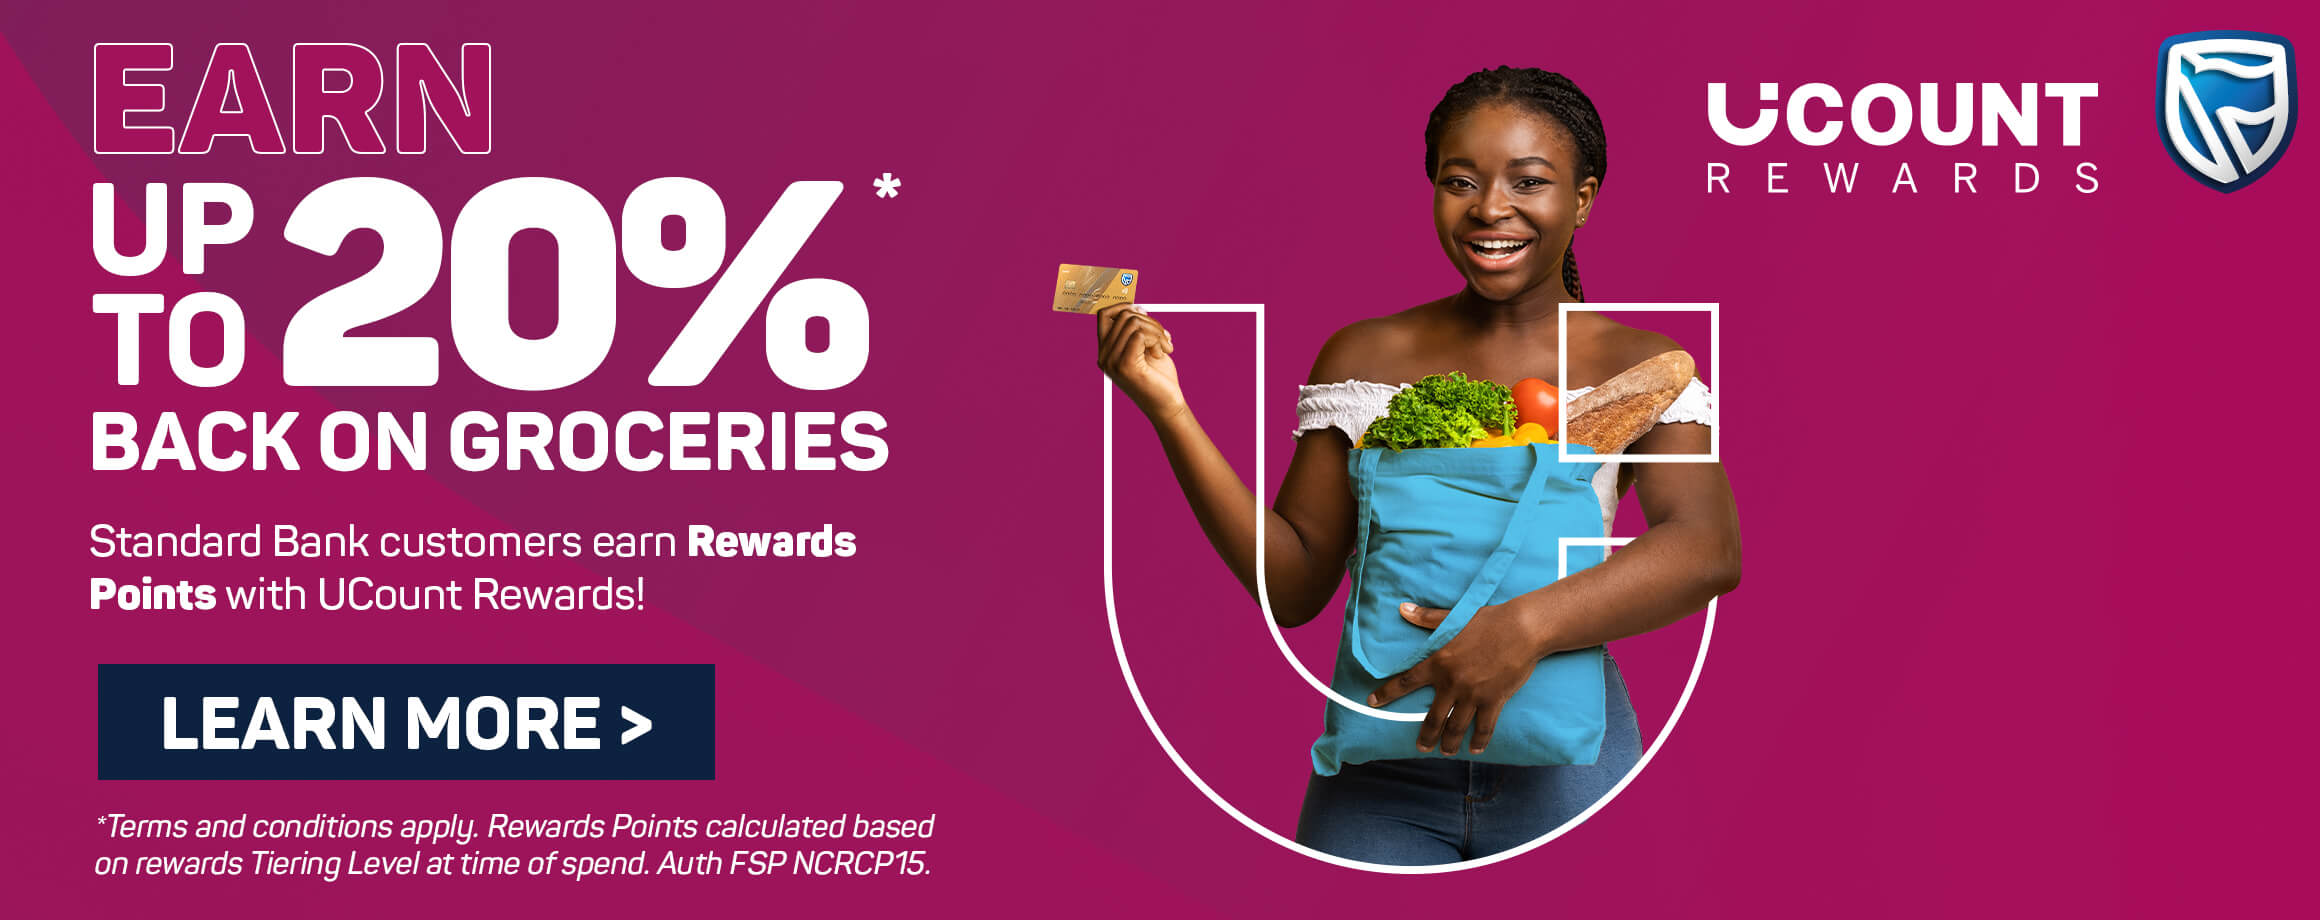 Earn up to 20% back on groceries. Learn more